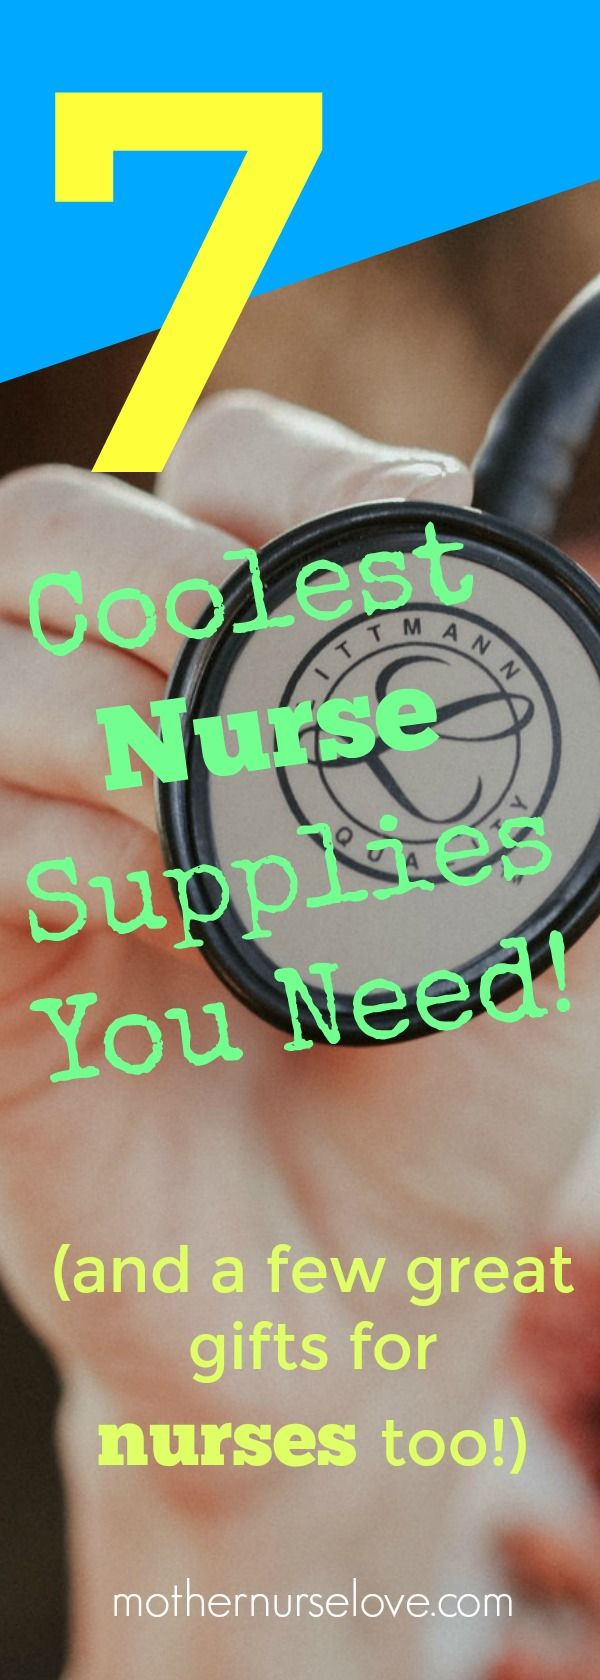 457360781c Here are the 7 coolest things your need in you nursing tool bag! And some  great gifts for nurses too! #nurse #nursegifts #nursesupplies #raptorshears  ...